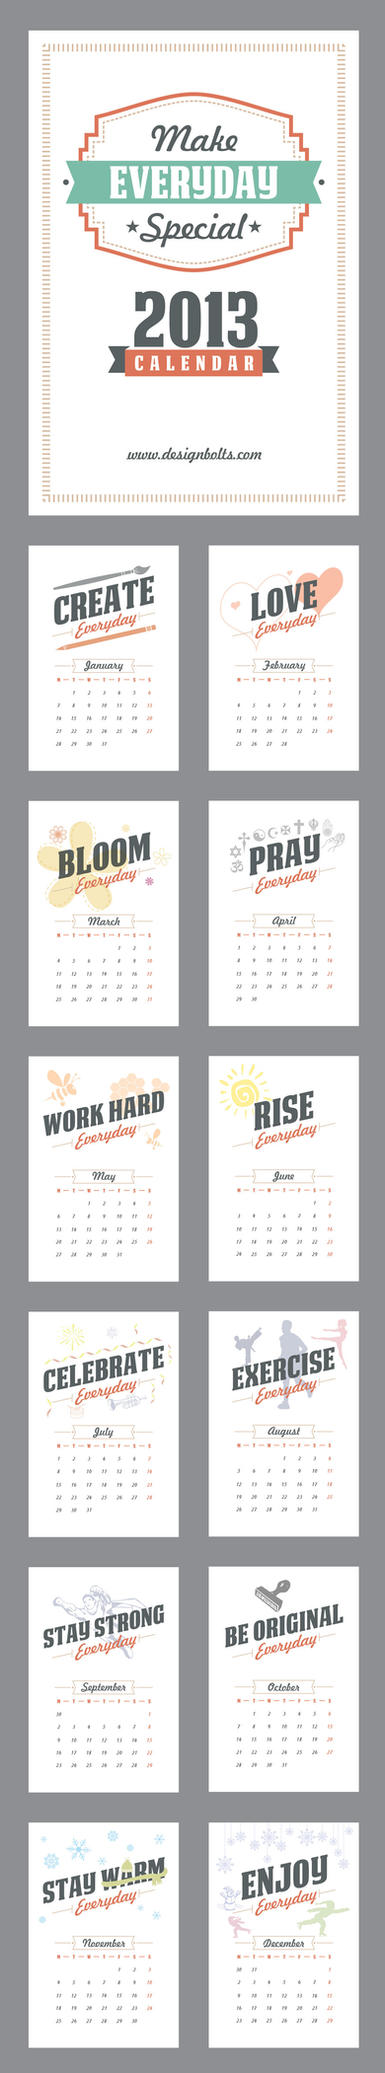 Make Everyday Special Calendar 2013 Printable by Designbolts